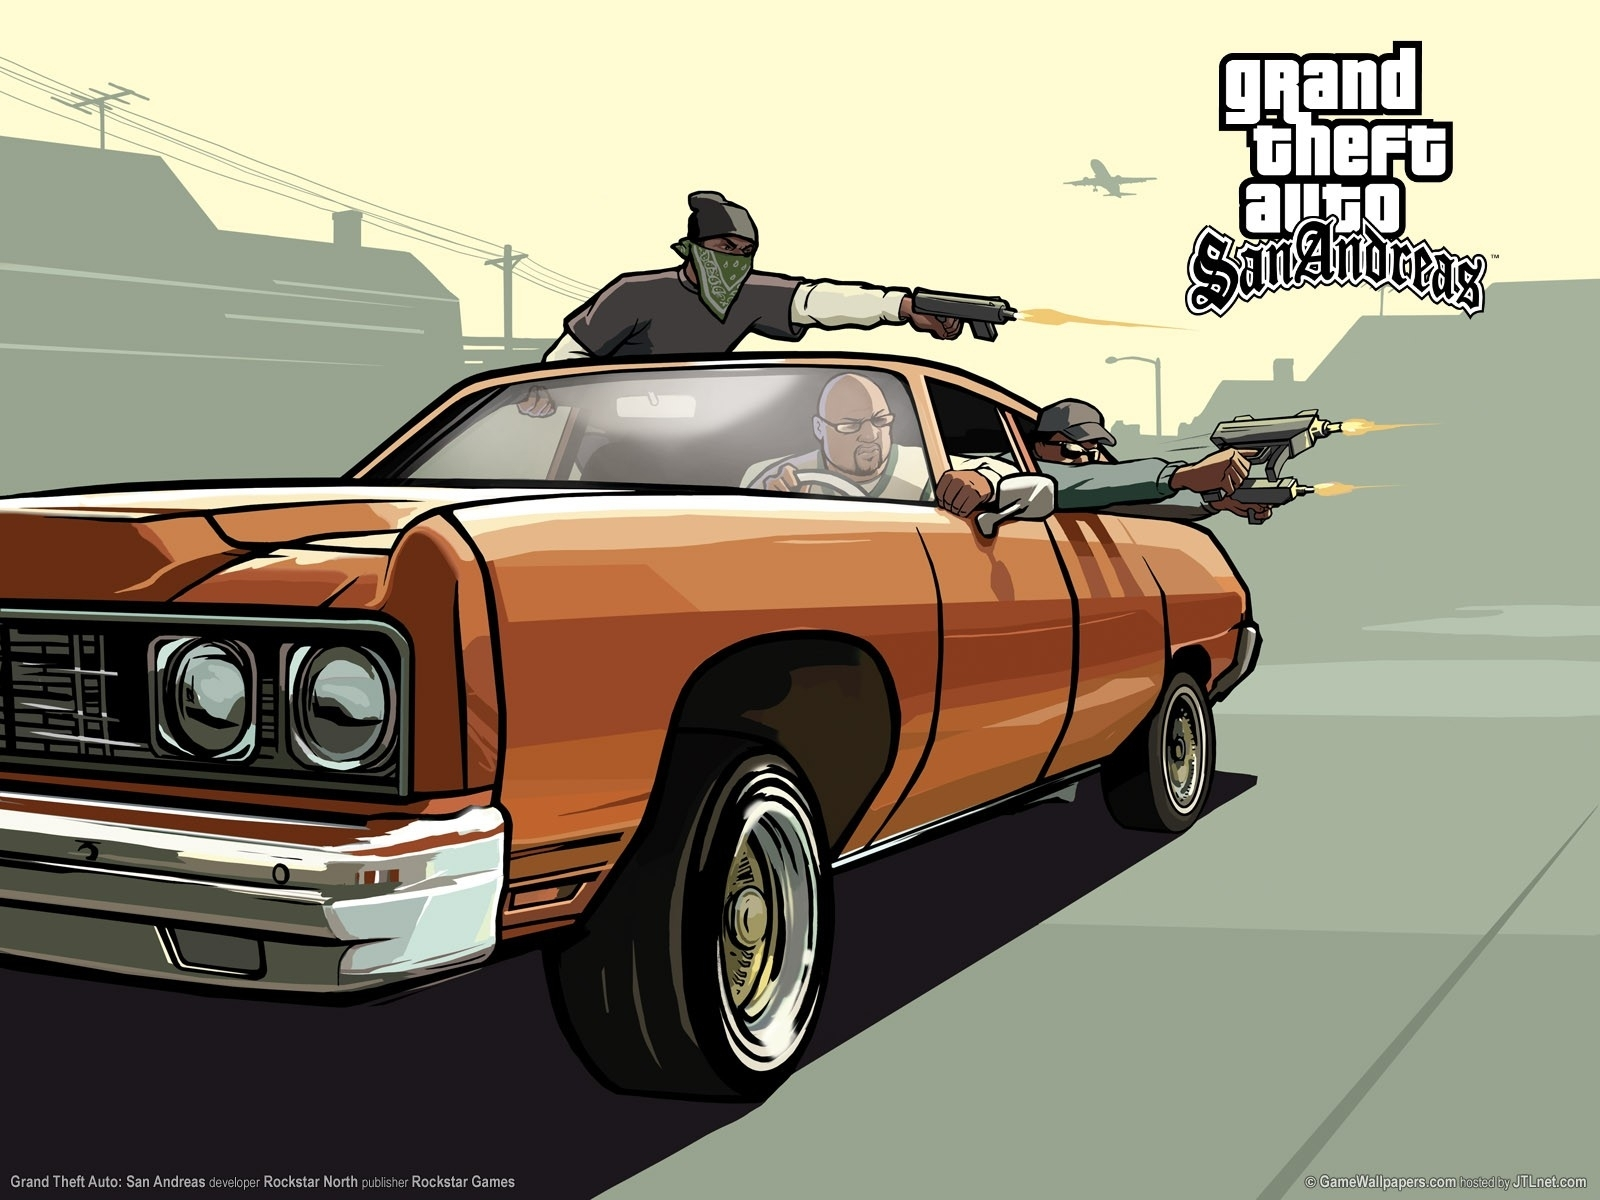 13 grand theft auto: san andreas hd wallpapers | background images